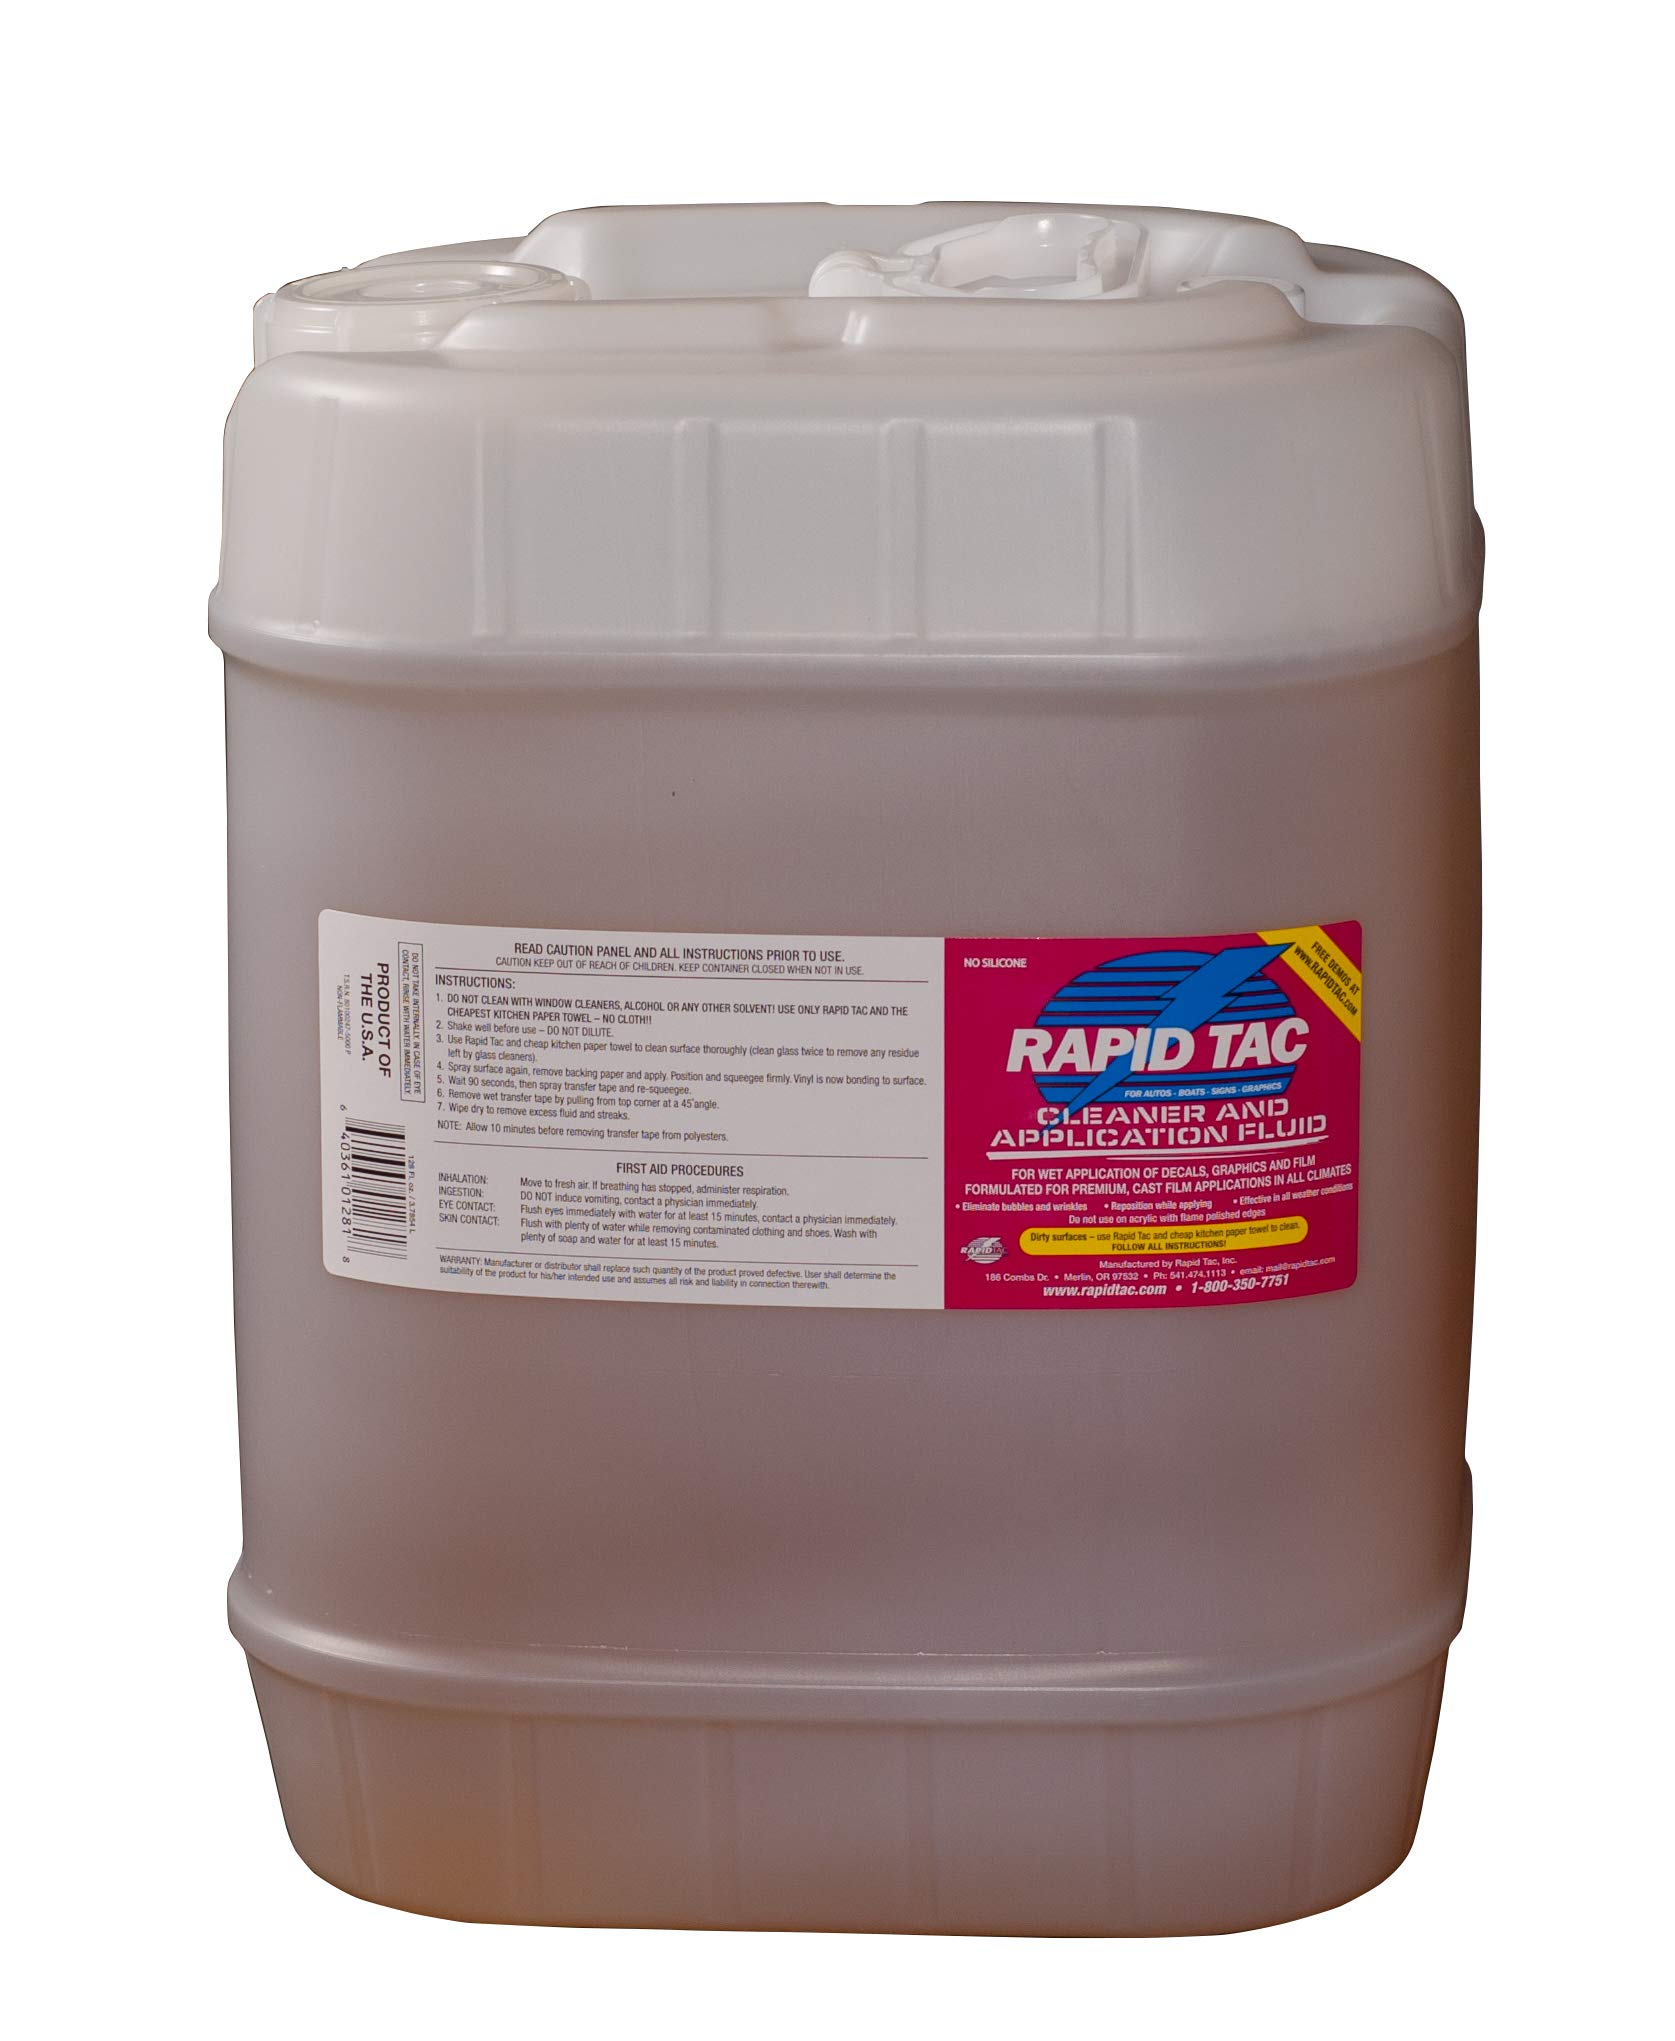 Rapid Tac Decal Application Fluid 5 Gallon Jug (640 Ounces) for Vinyl Wraps Autos Boats Signs Graphics Stickers